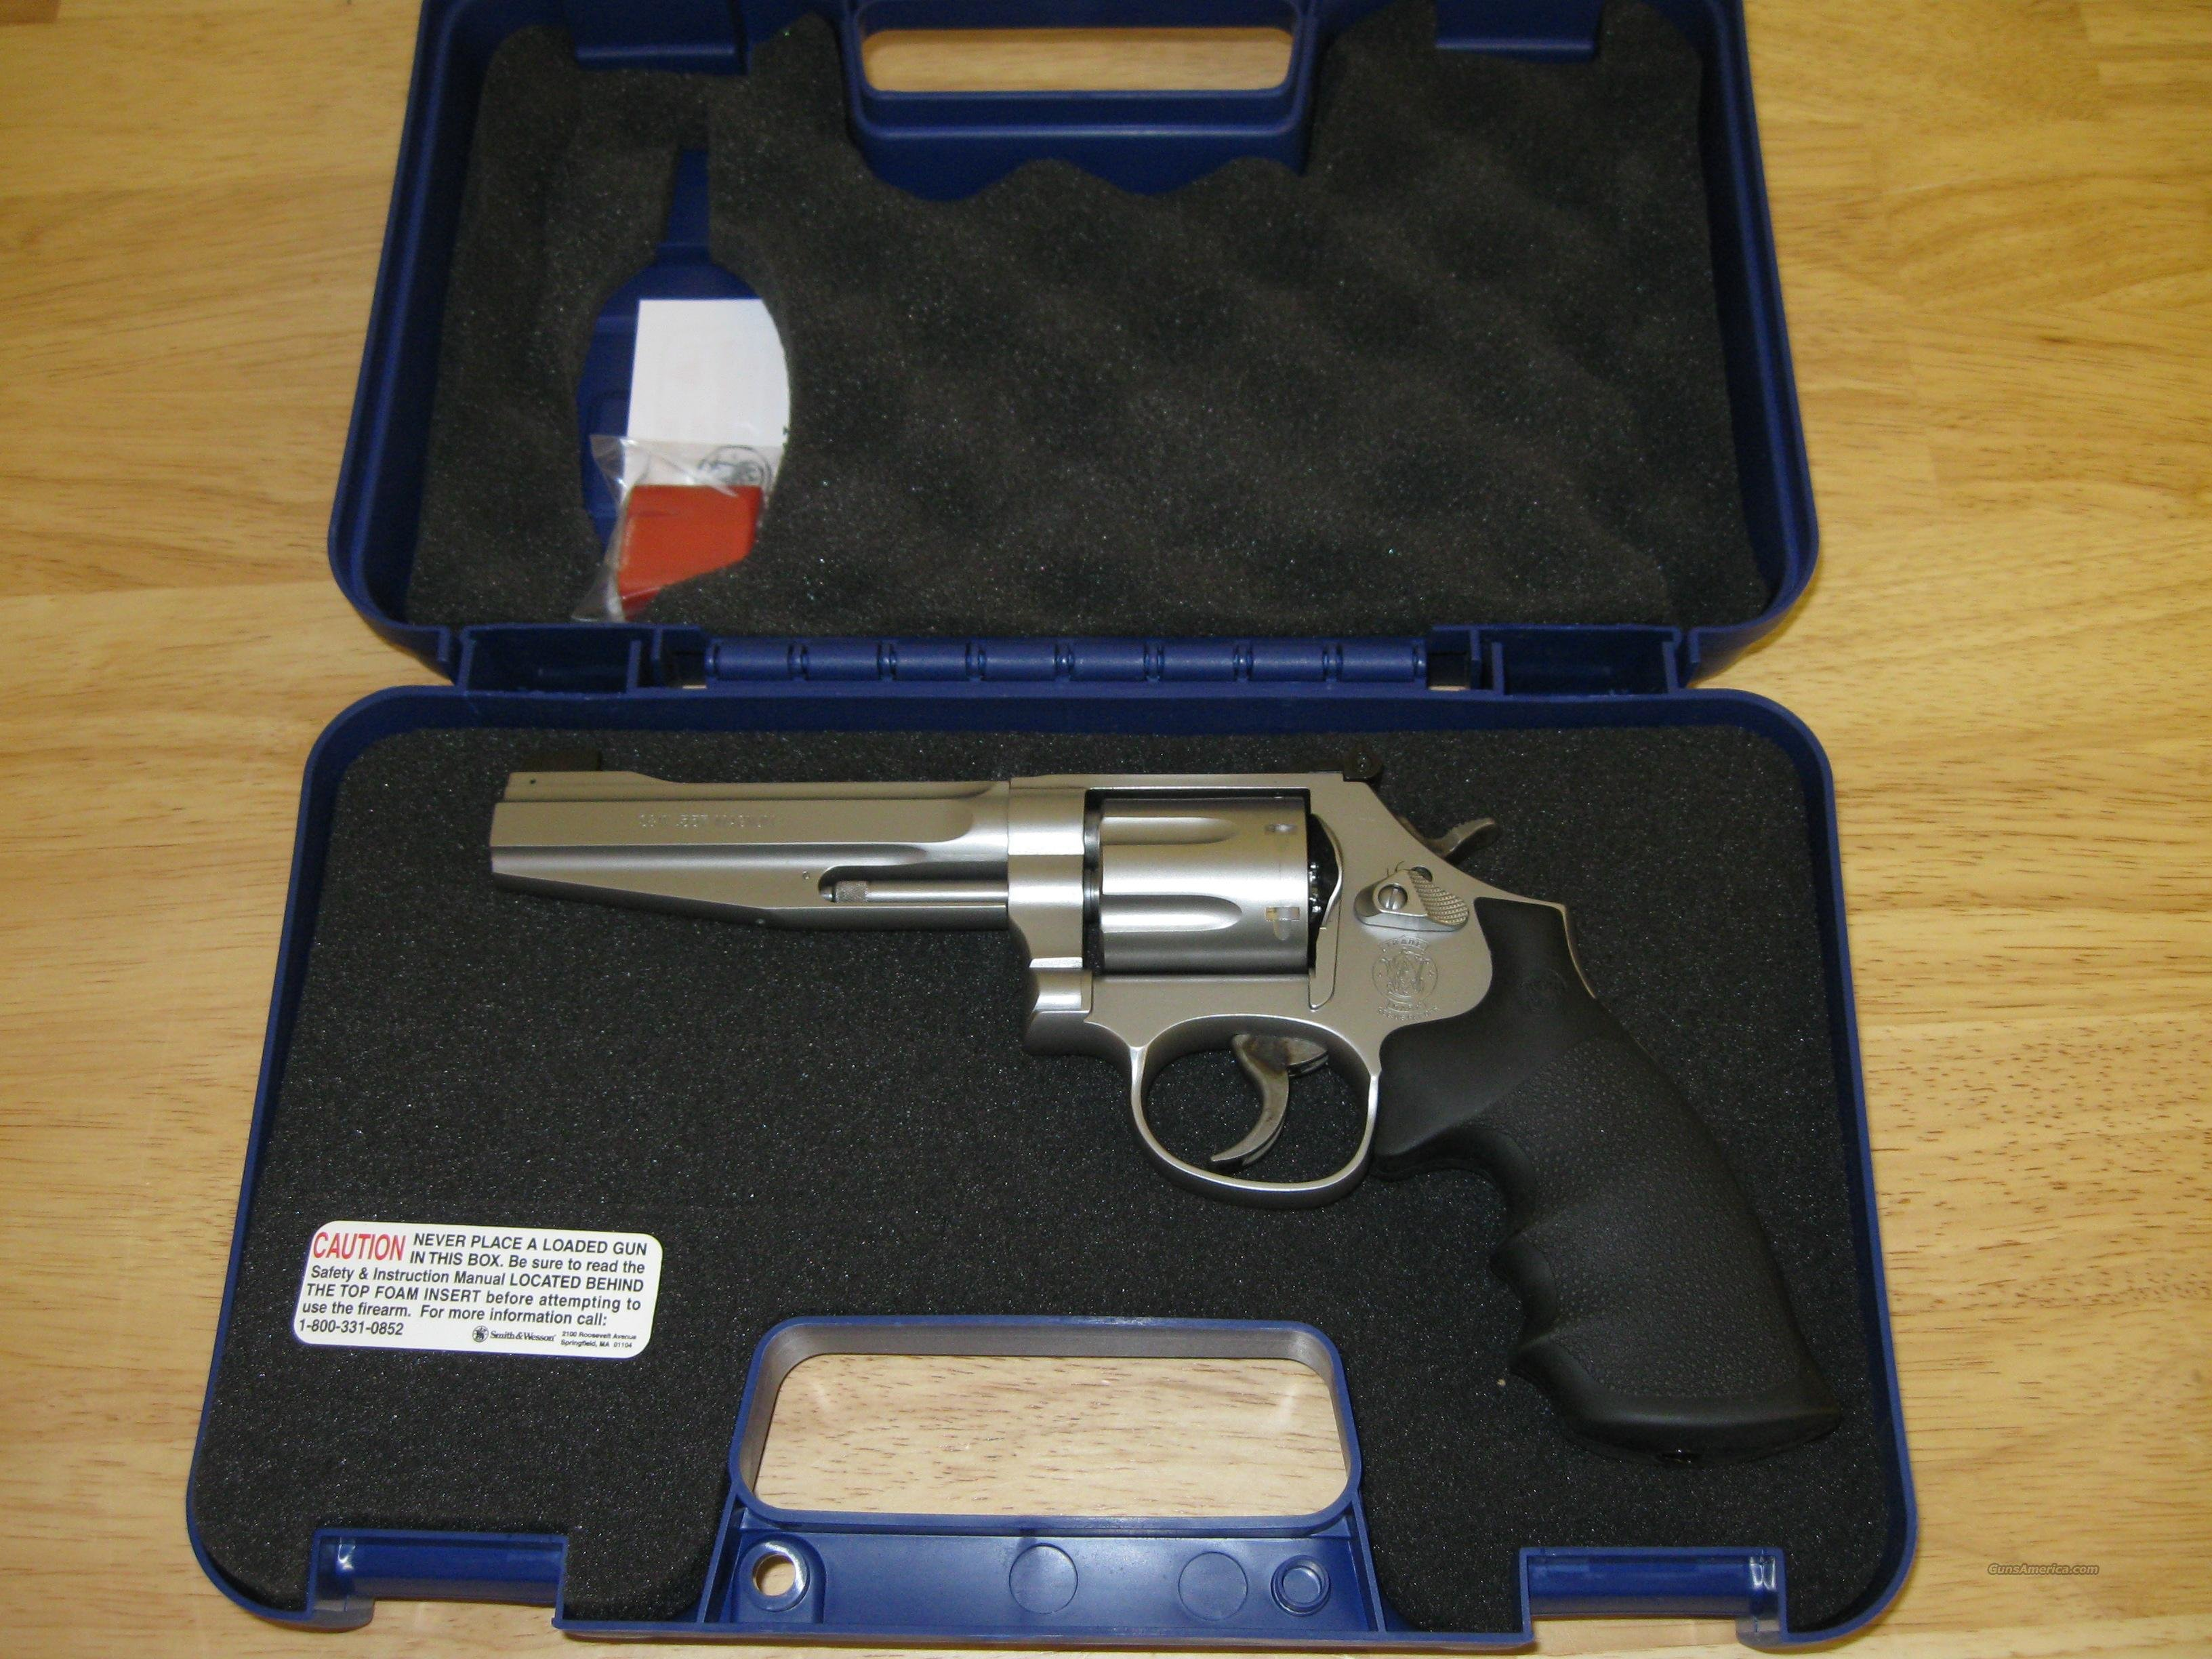 Smith & Wesson M686 Pro Revolver 178038, 357 Mag, 5 in, Matte Stainless Finish, Cut for Moon Clips, 7 Rd  Guns > Pistols > Smith & Wesson Revolvers > Full Frame Revolver